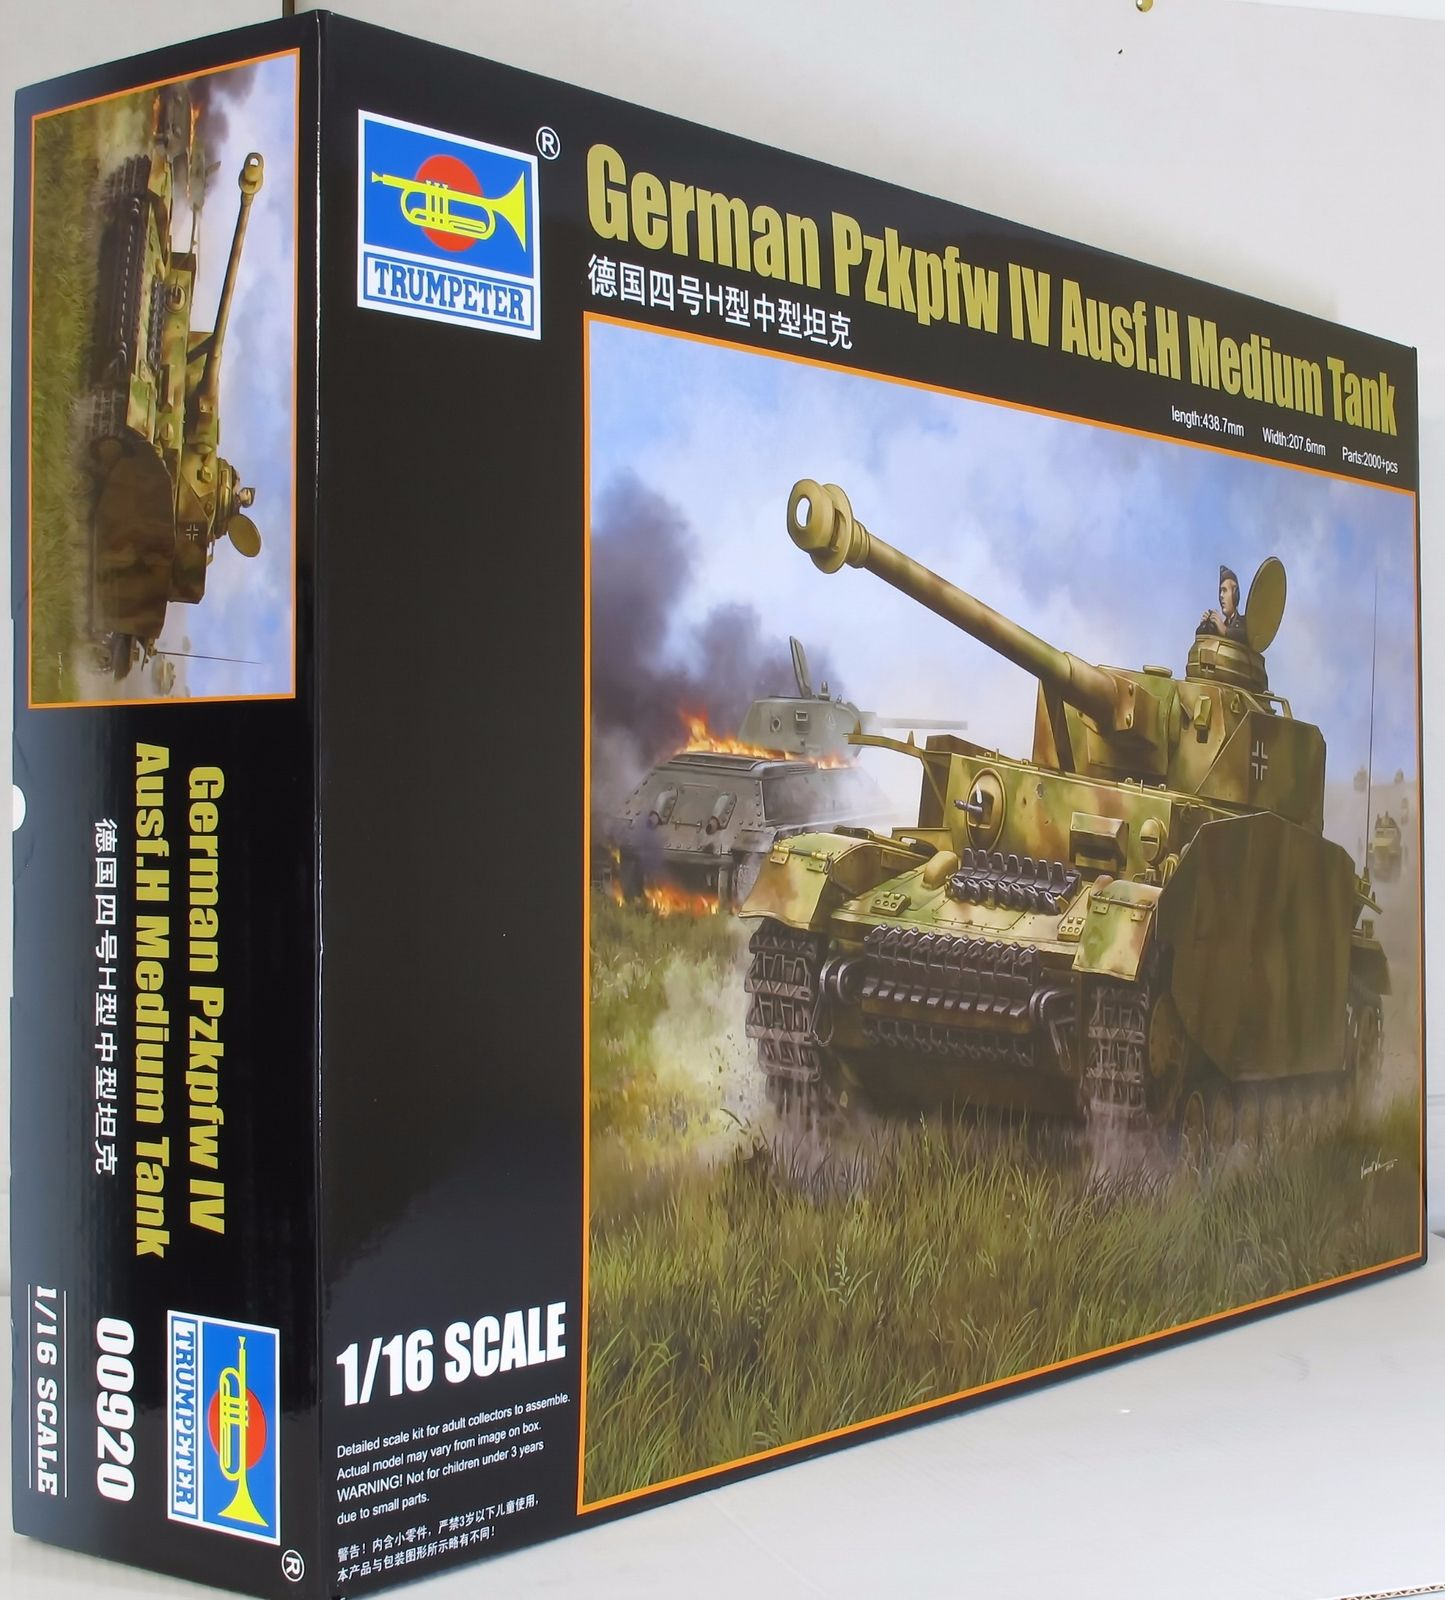 1pcs Figure Model Collections Kit For Trumpeter 1/16 Scale Tank Model 00920 German Pzkpfw Iv Ausf.h Medium Tank Jigsaw limit discounts trumpeter model 1 35 scale military models 01019 soviet 9p117m1 launcher w 9k72 missile elbrus model kit